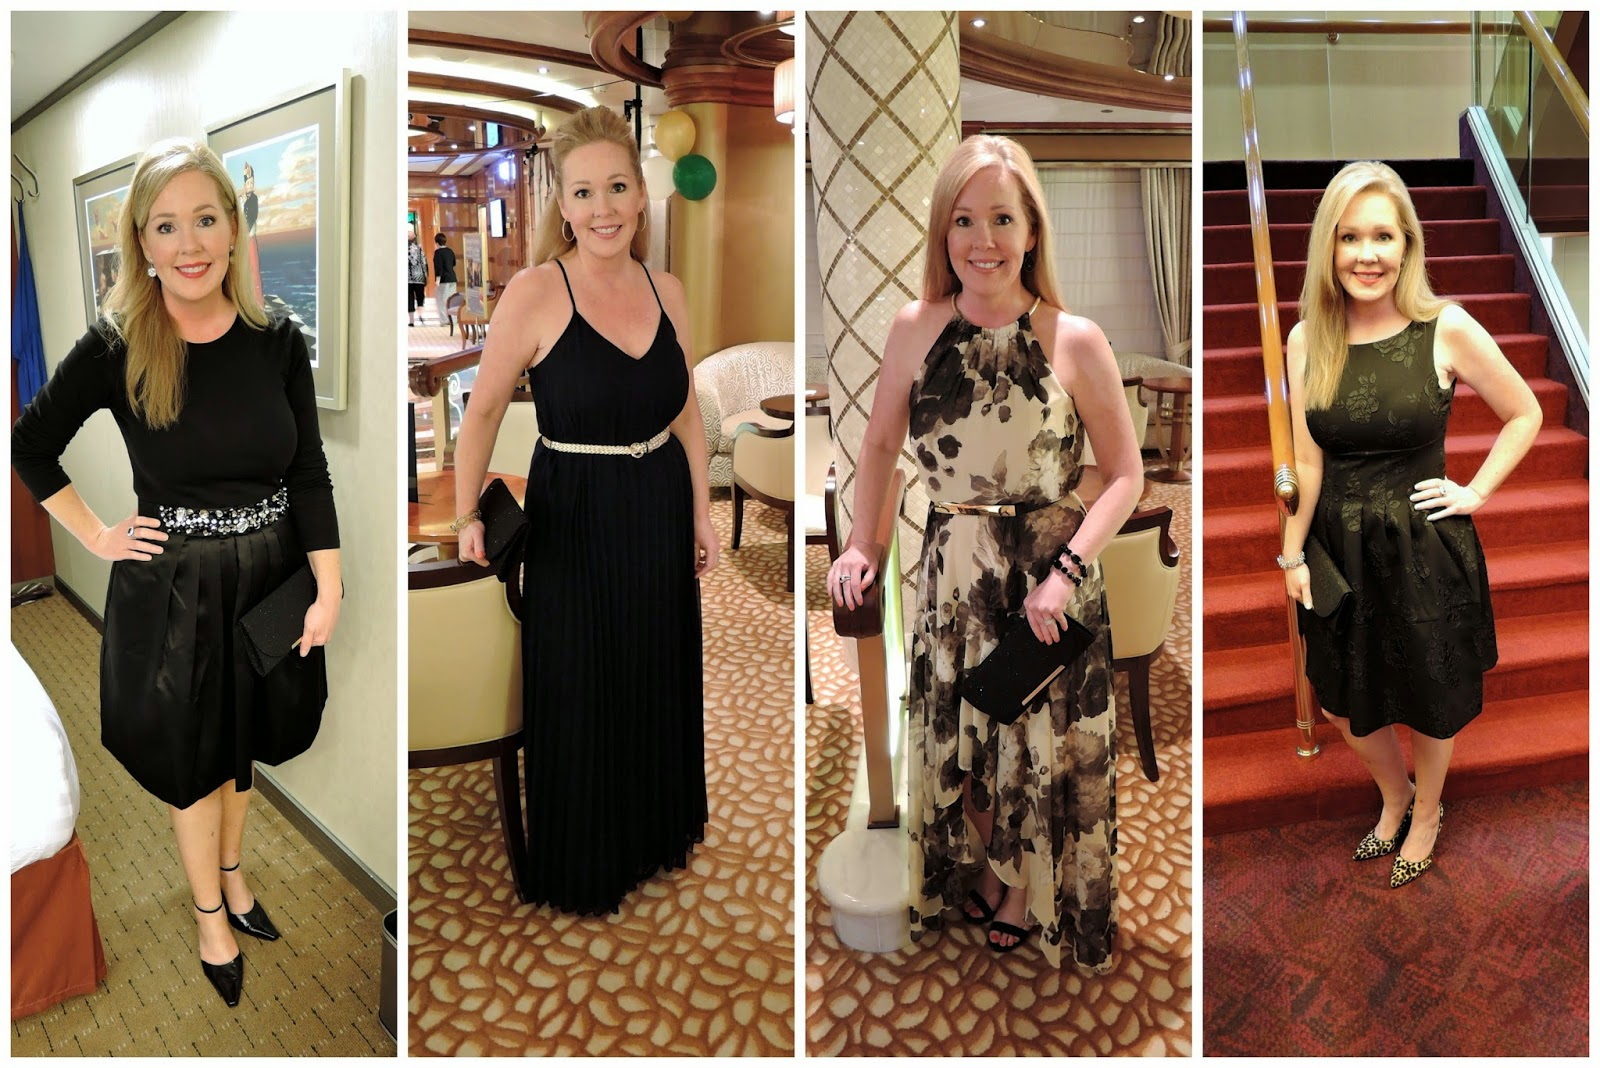 cruise outfit ideas: what to wear on a cruise?